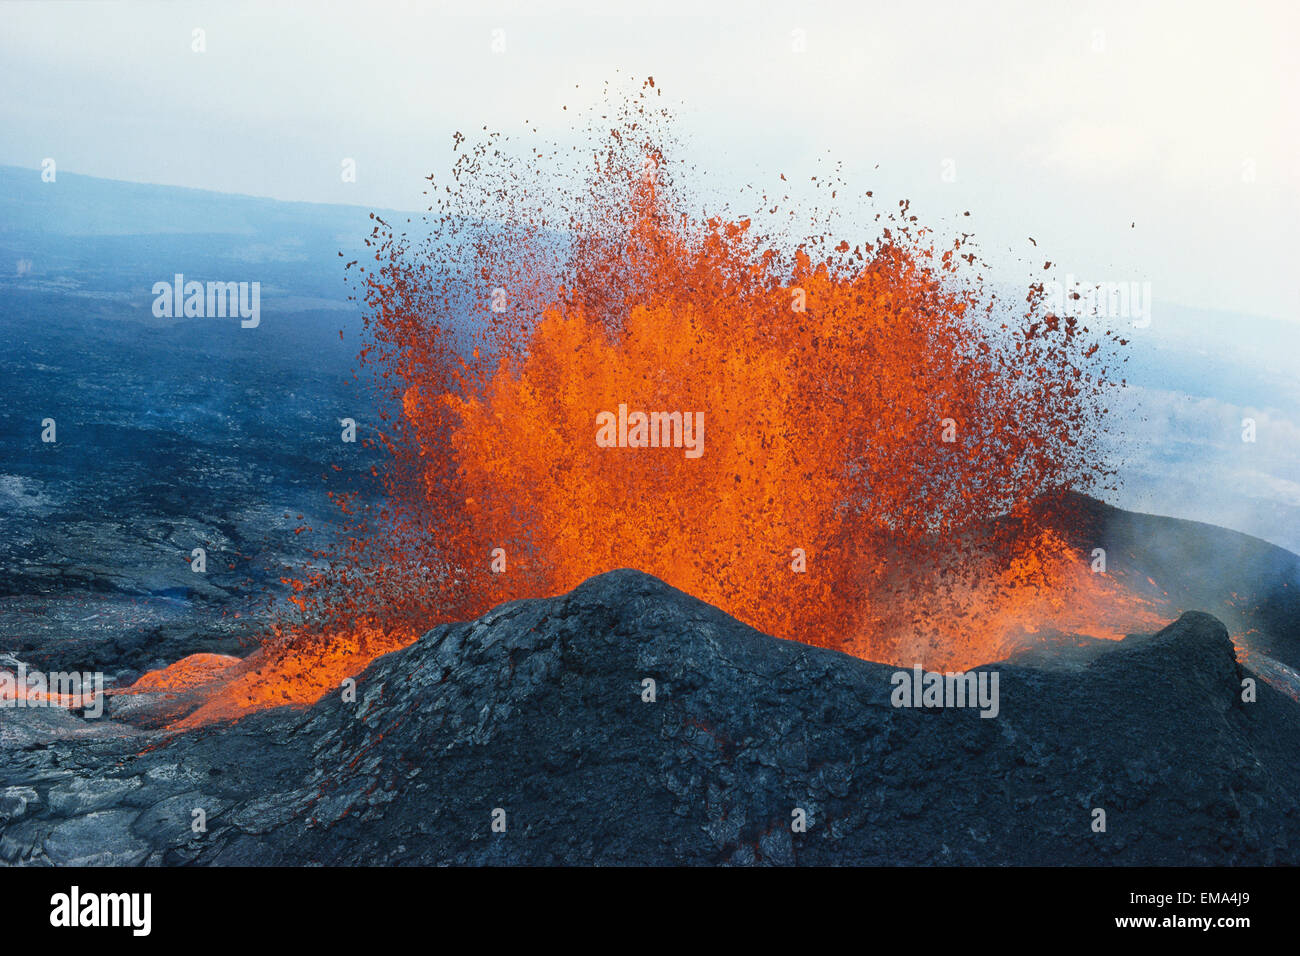 Hawaii, Big Island, Hawaii Volcanoes National Park, Fountaining Lava, Puu Oo Vent, Crater A28D - Stock Image